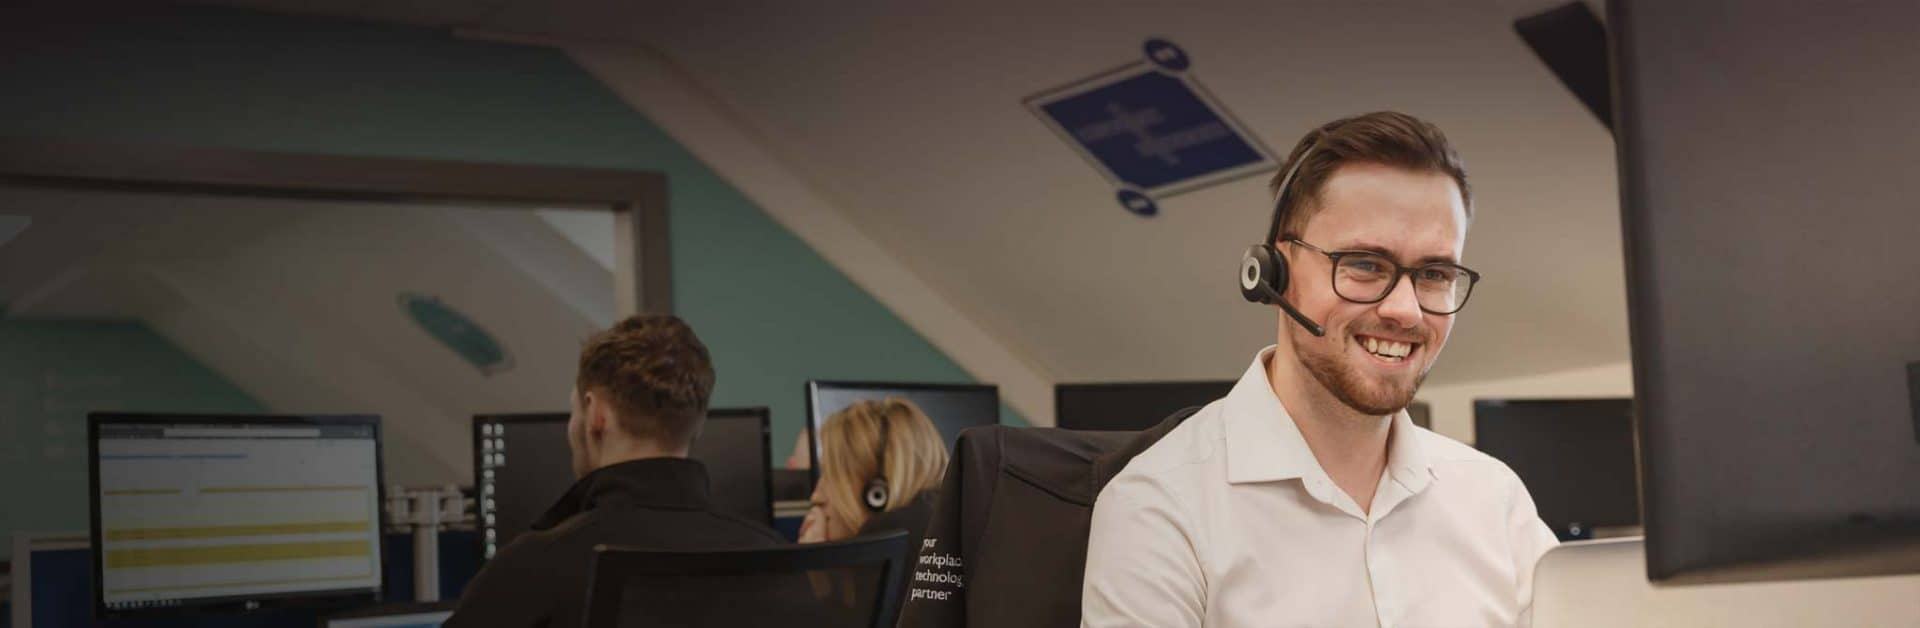 Man on IT helpdesk with headset contact